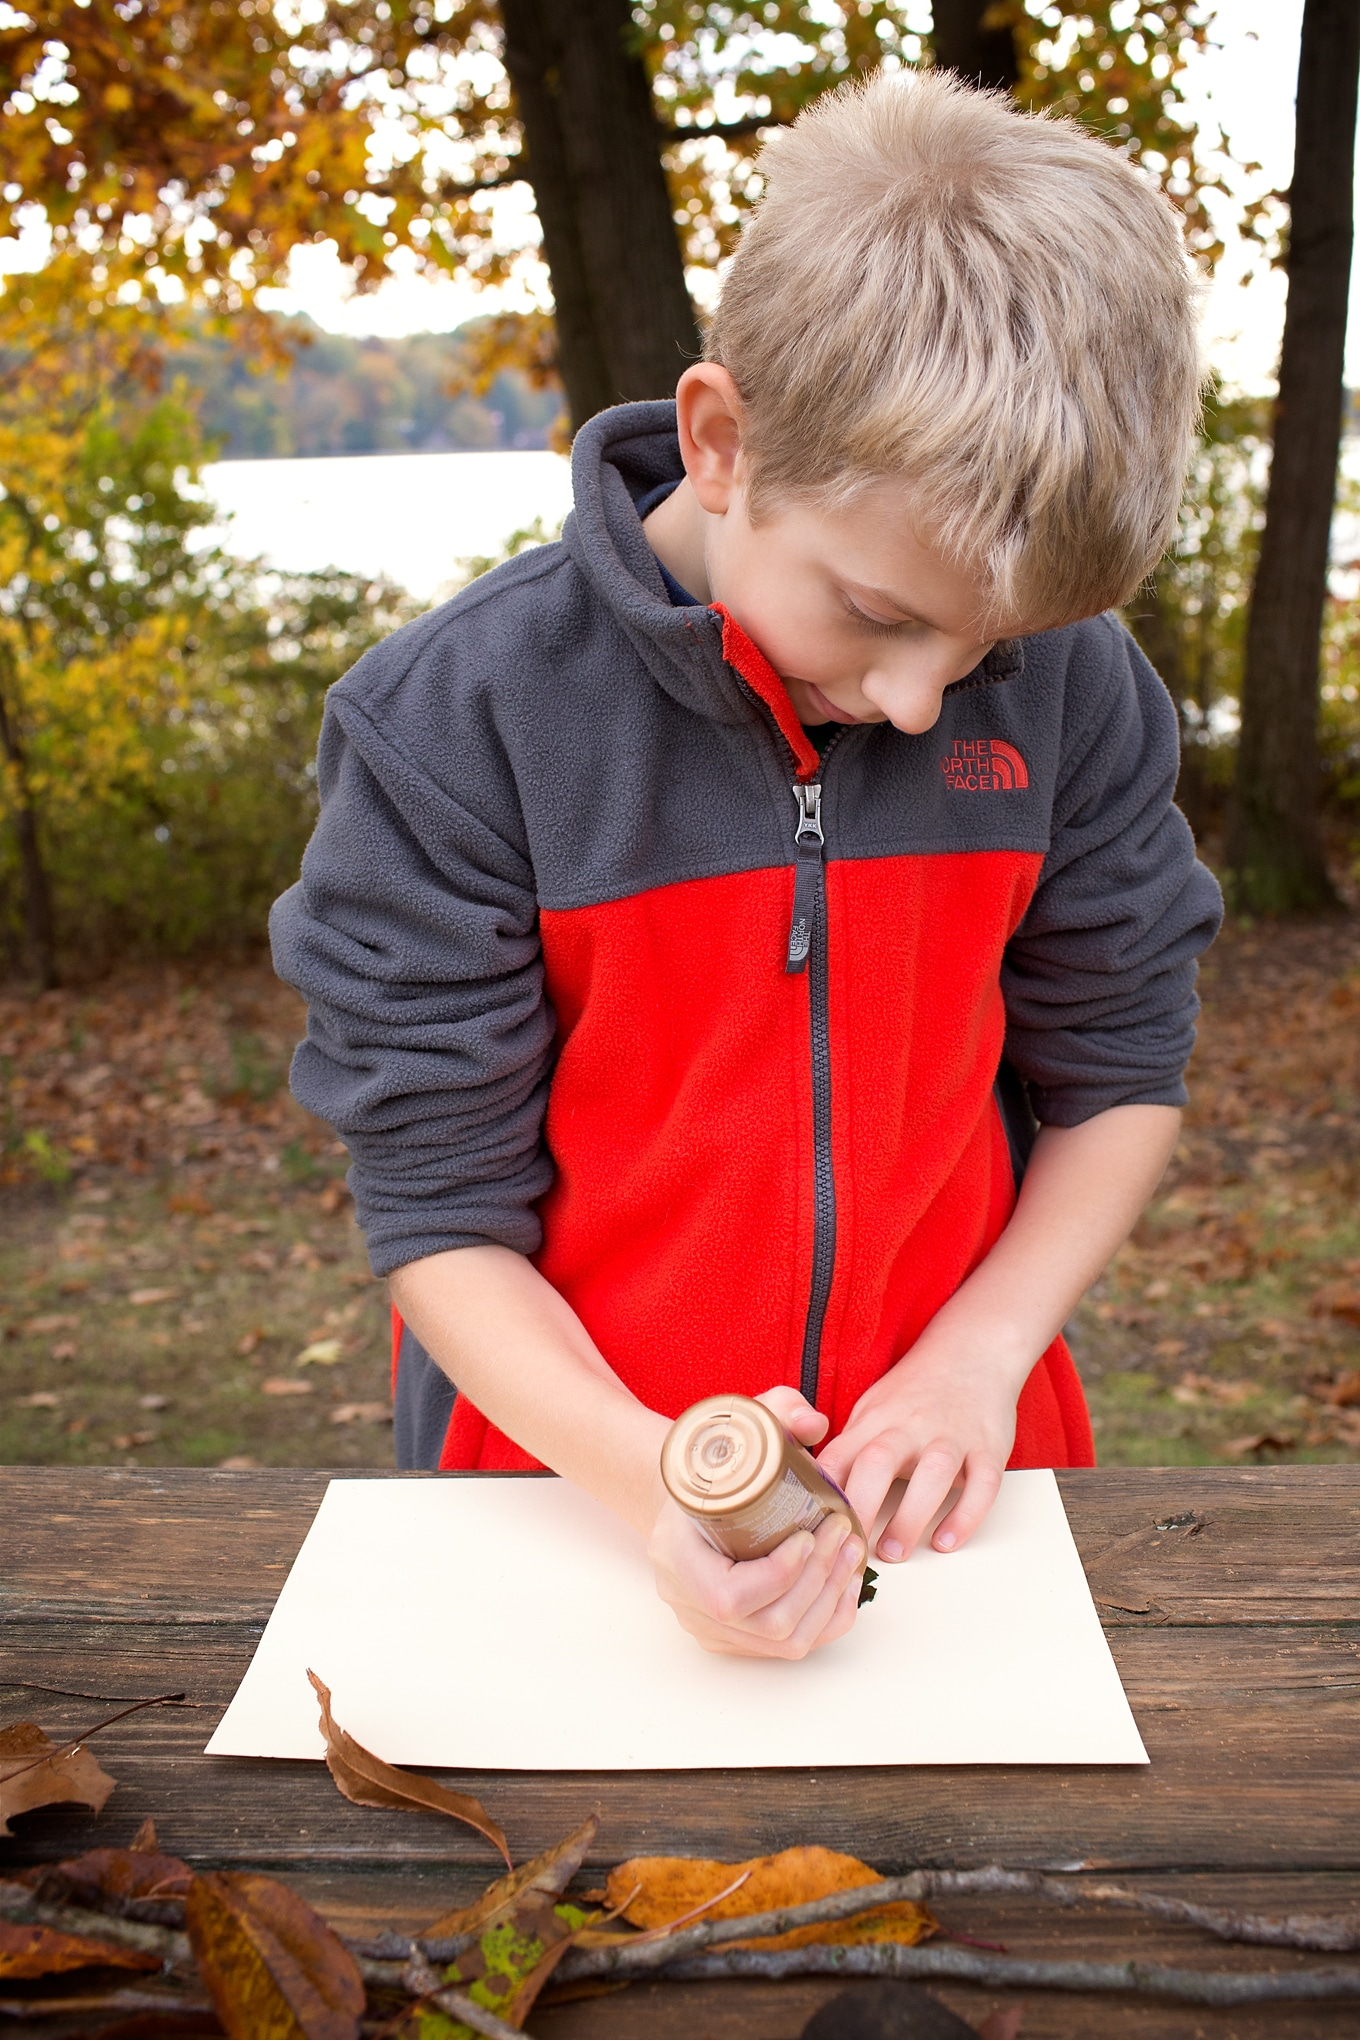 Kids of all ages will enjoy using leaves, twigs, pebbles, and pine cone to make creative nature art! It's the perfect fall nature craft for kids.